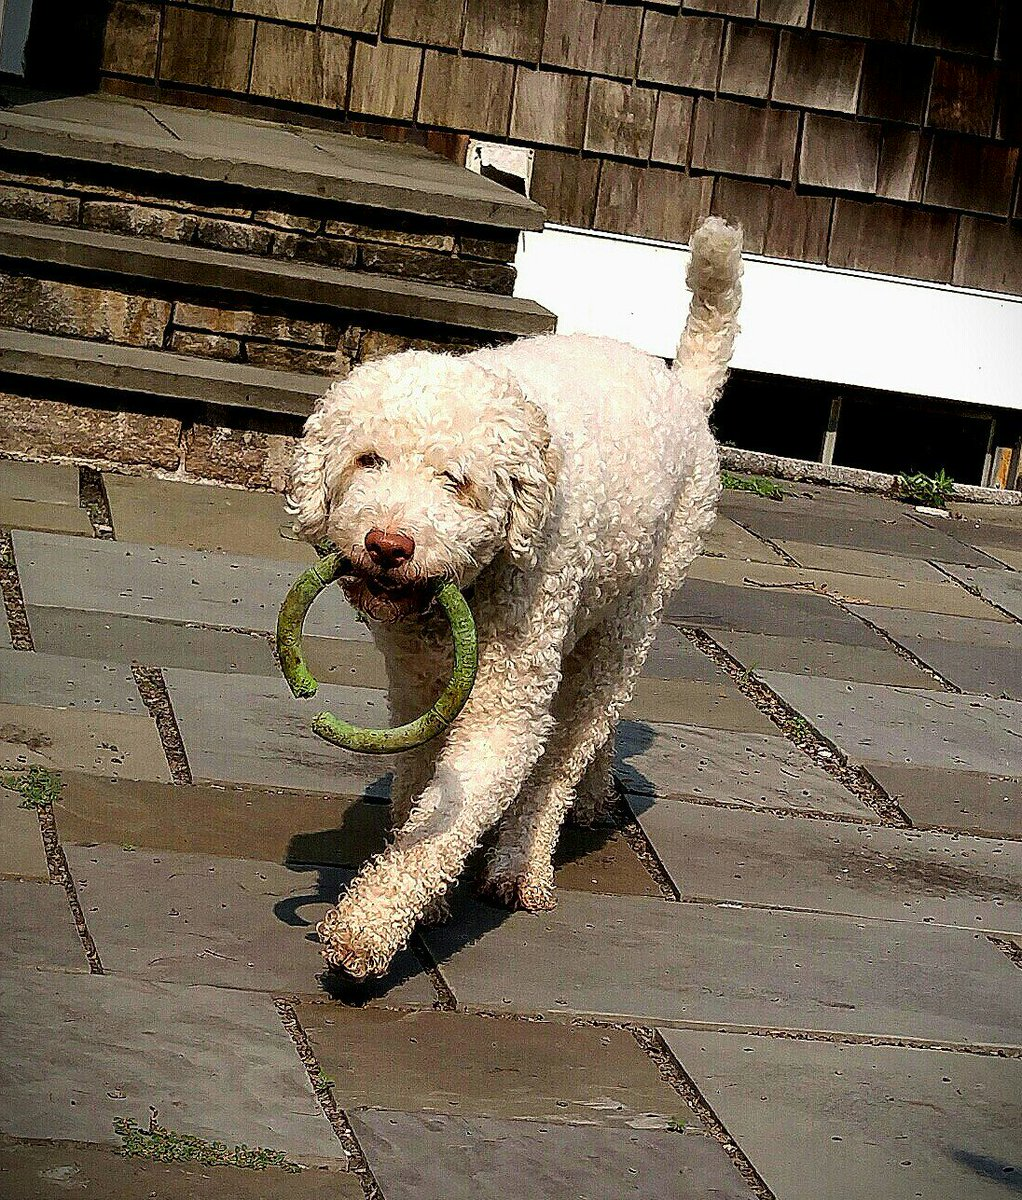 Theo&#39;s pup tip of the day: When you feel like you can&#39;t live without that new toy - That&#39;s just Hypnosis By Advertising. The antidote is to dig out an old toy. Old toys give you twice the pleasure: The fun of playing with it now and the memories of all the fun you had before. <br>http://pic.twitter.com/V6Str3cDVv